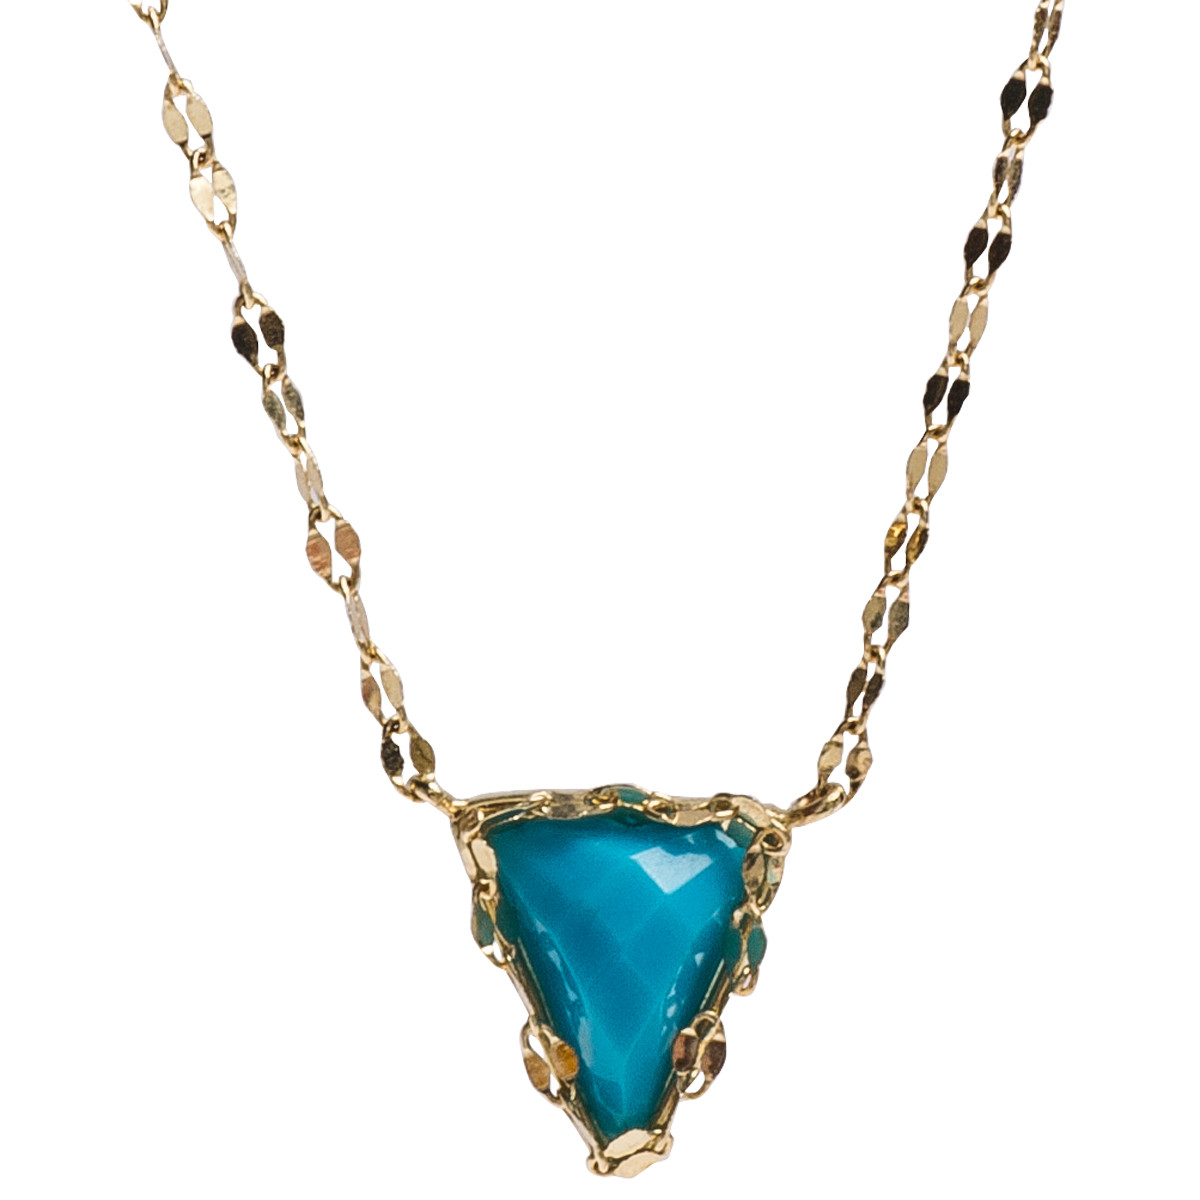 New Lana Jewelry Turquoise Necklace